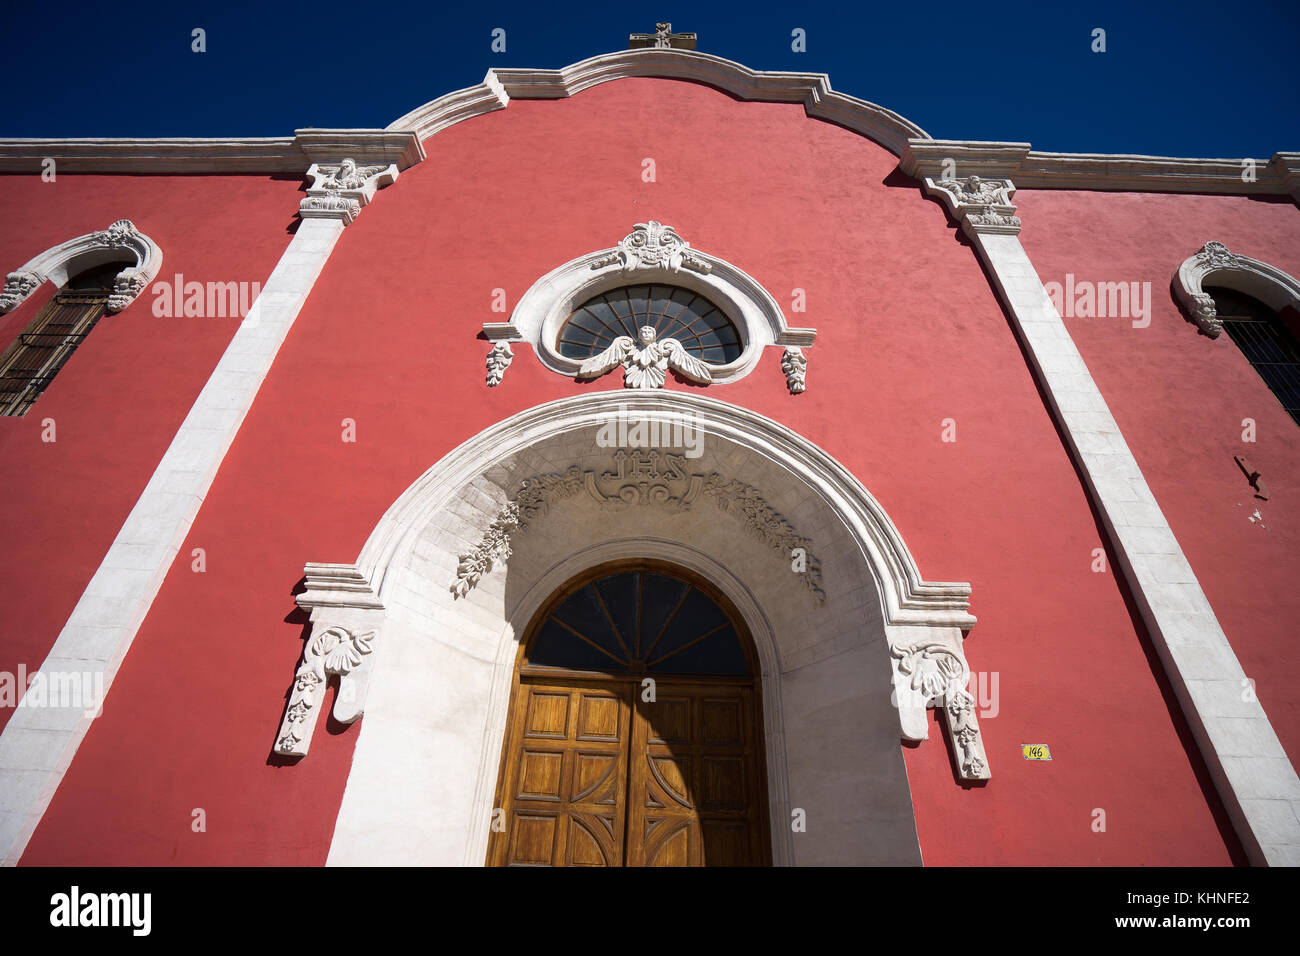 Colonial Architecture Of A Mexican Church In Saltillo